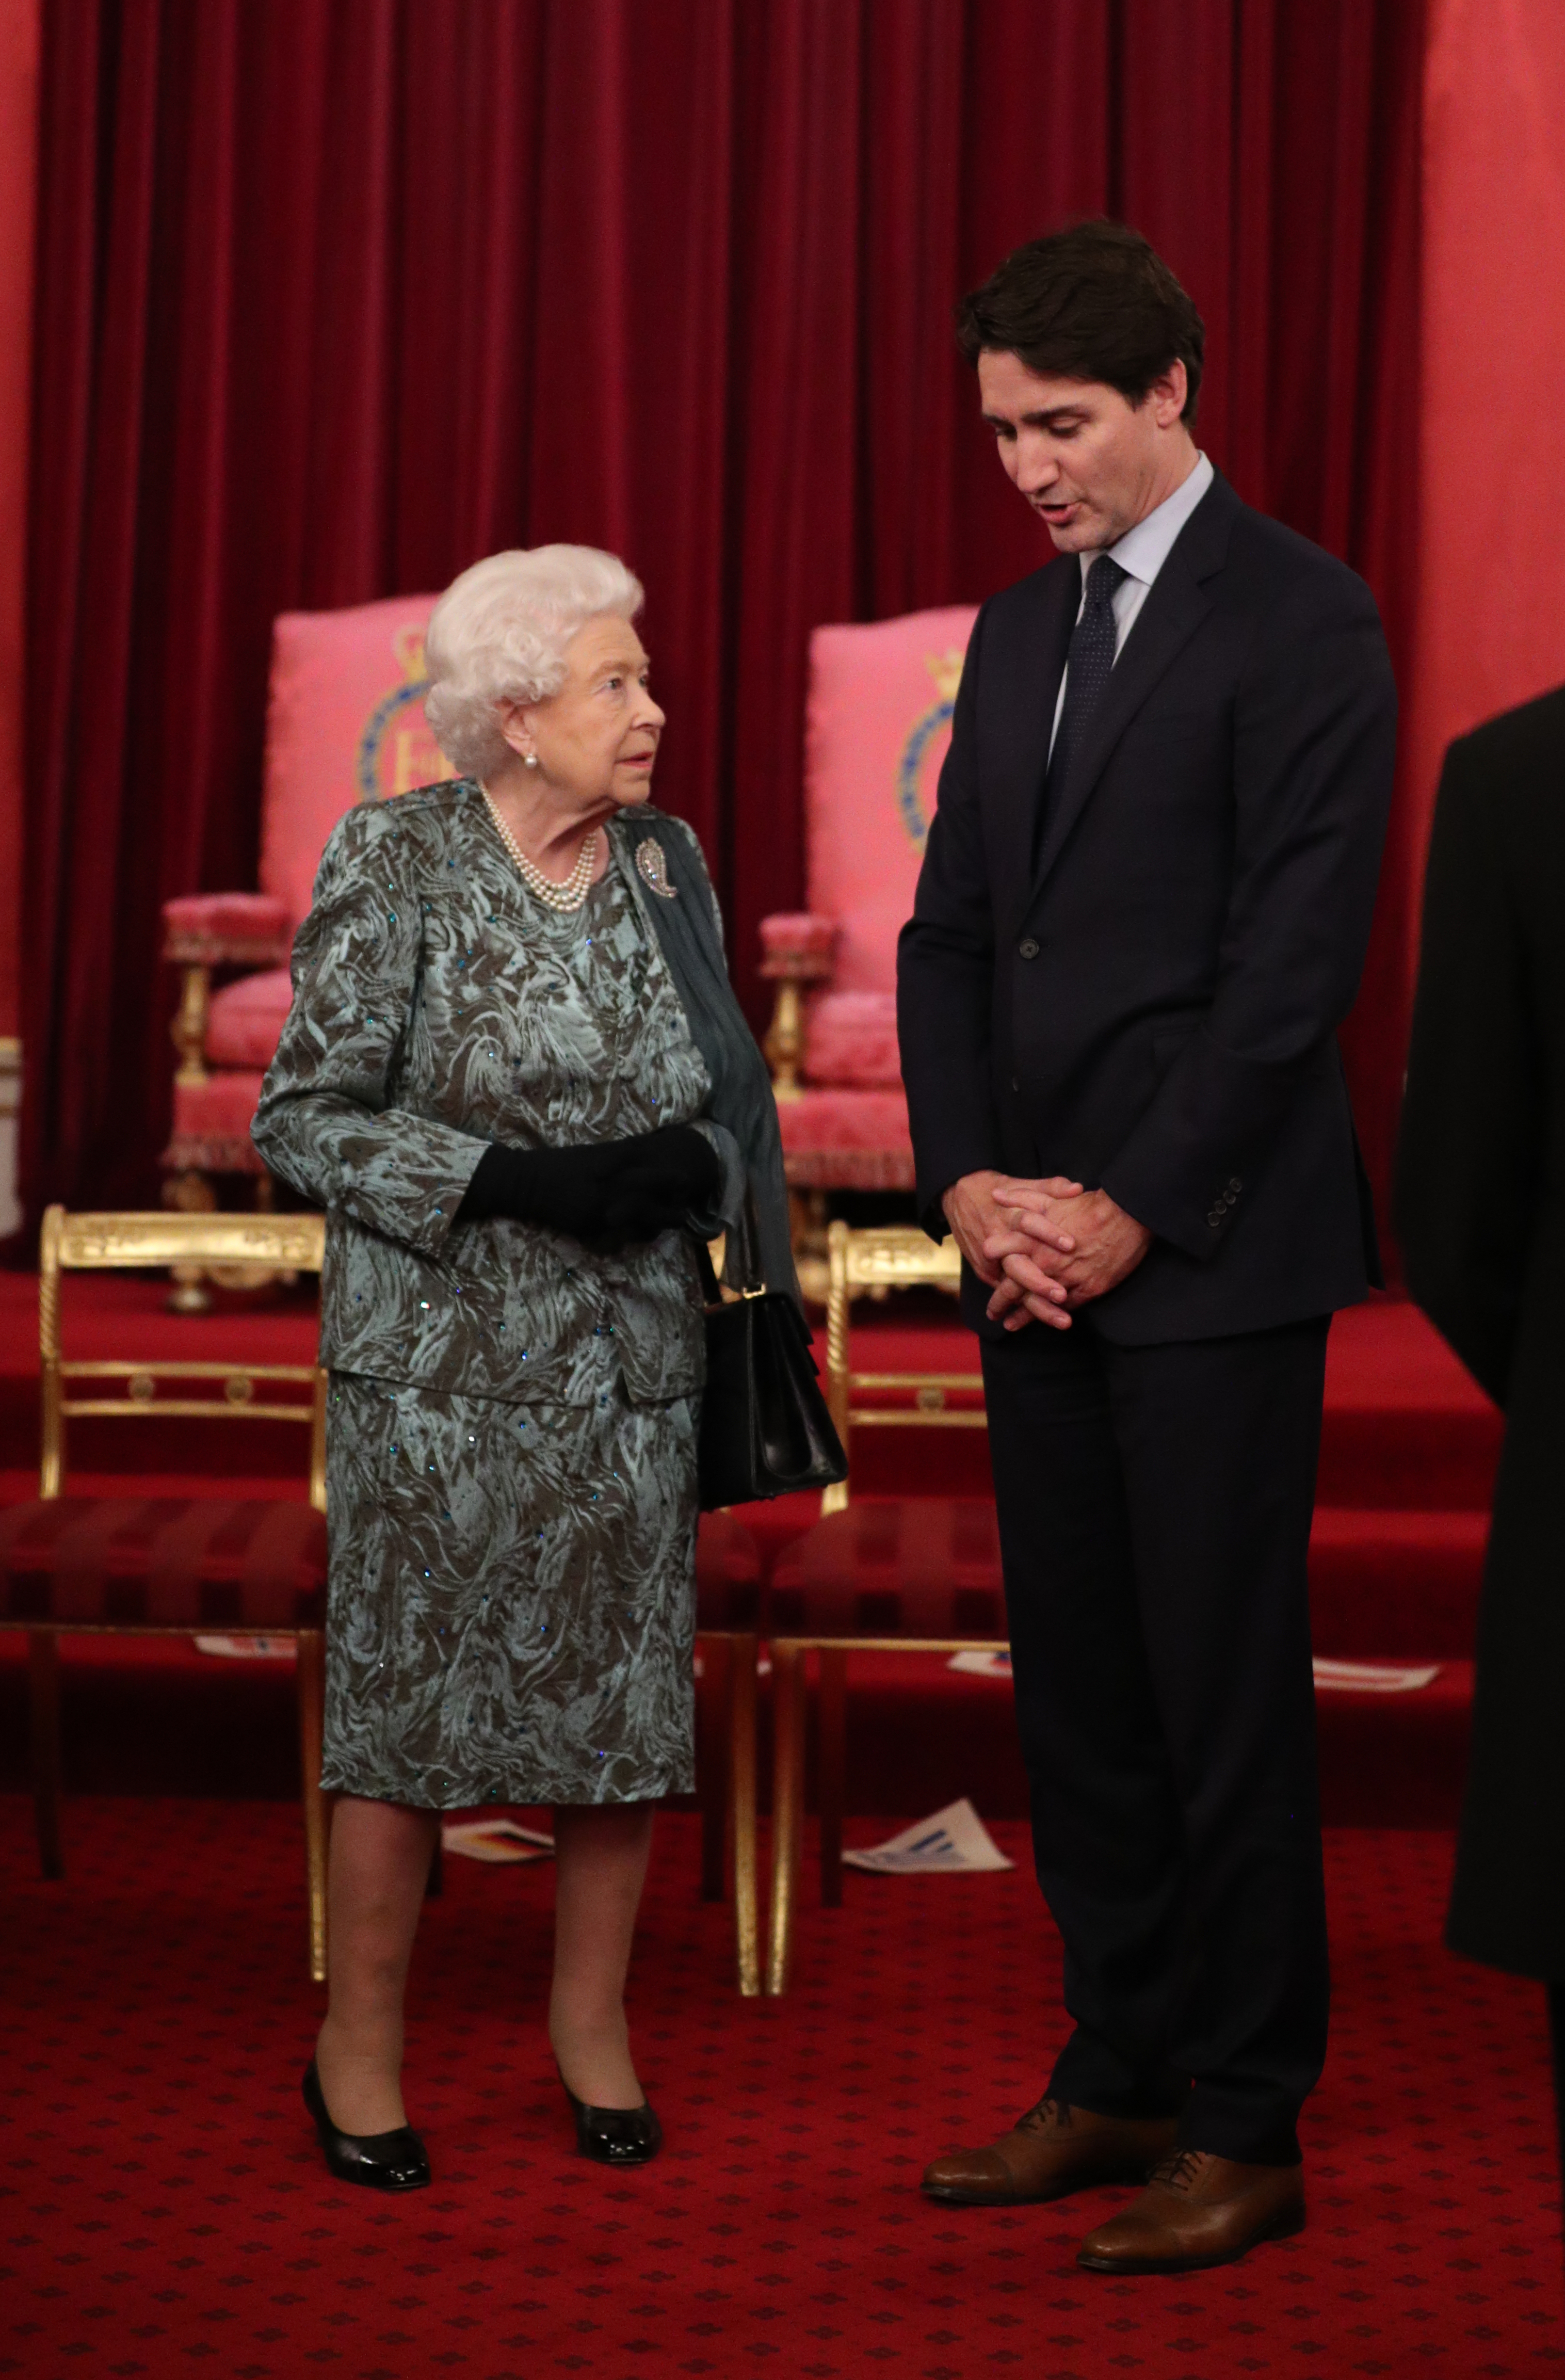 Queen Elizabeth II with Canadian Prime Minister Justin Trudeau during the reception in Buckingham Palace, London, as Nato leaders gather to mark 70 years of the alliance.